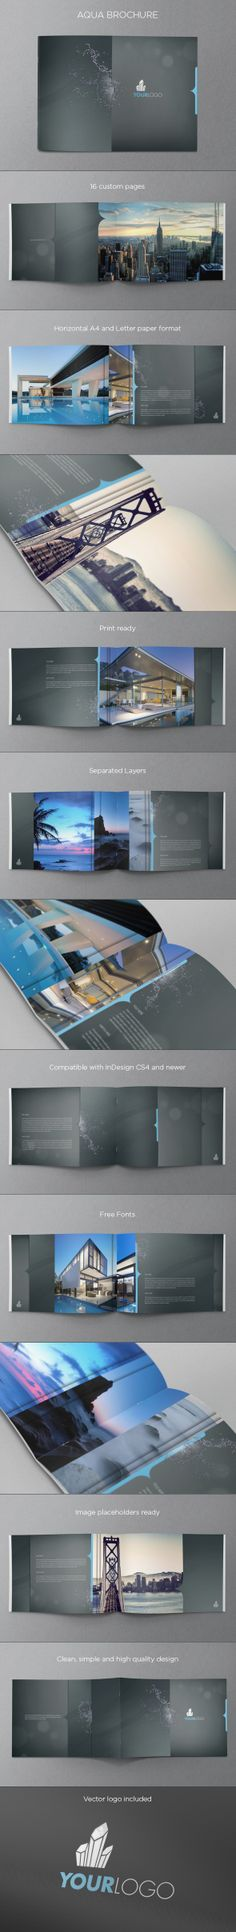 Aqua Premium Brochure. Download here: http://graphicriver.net/item/aqua-premium-brochure/4646509 #design #brochure